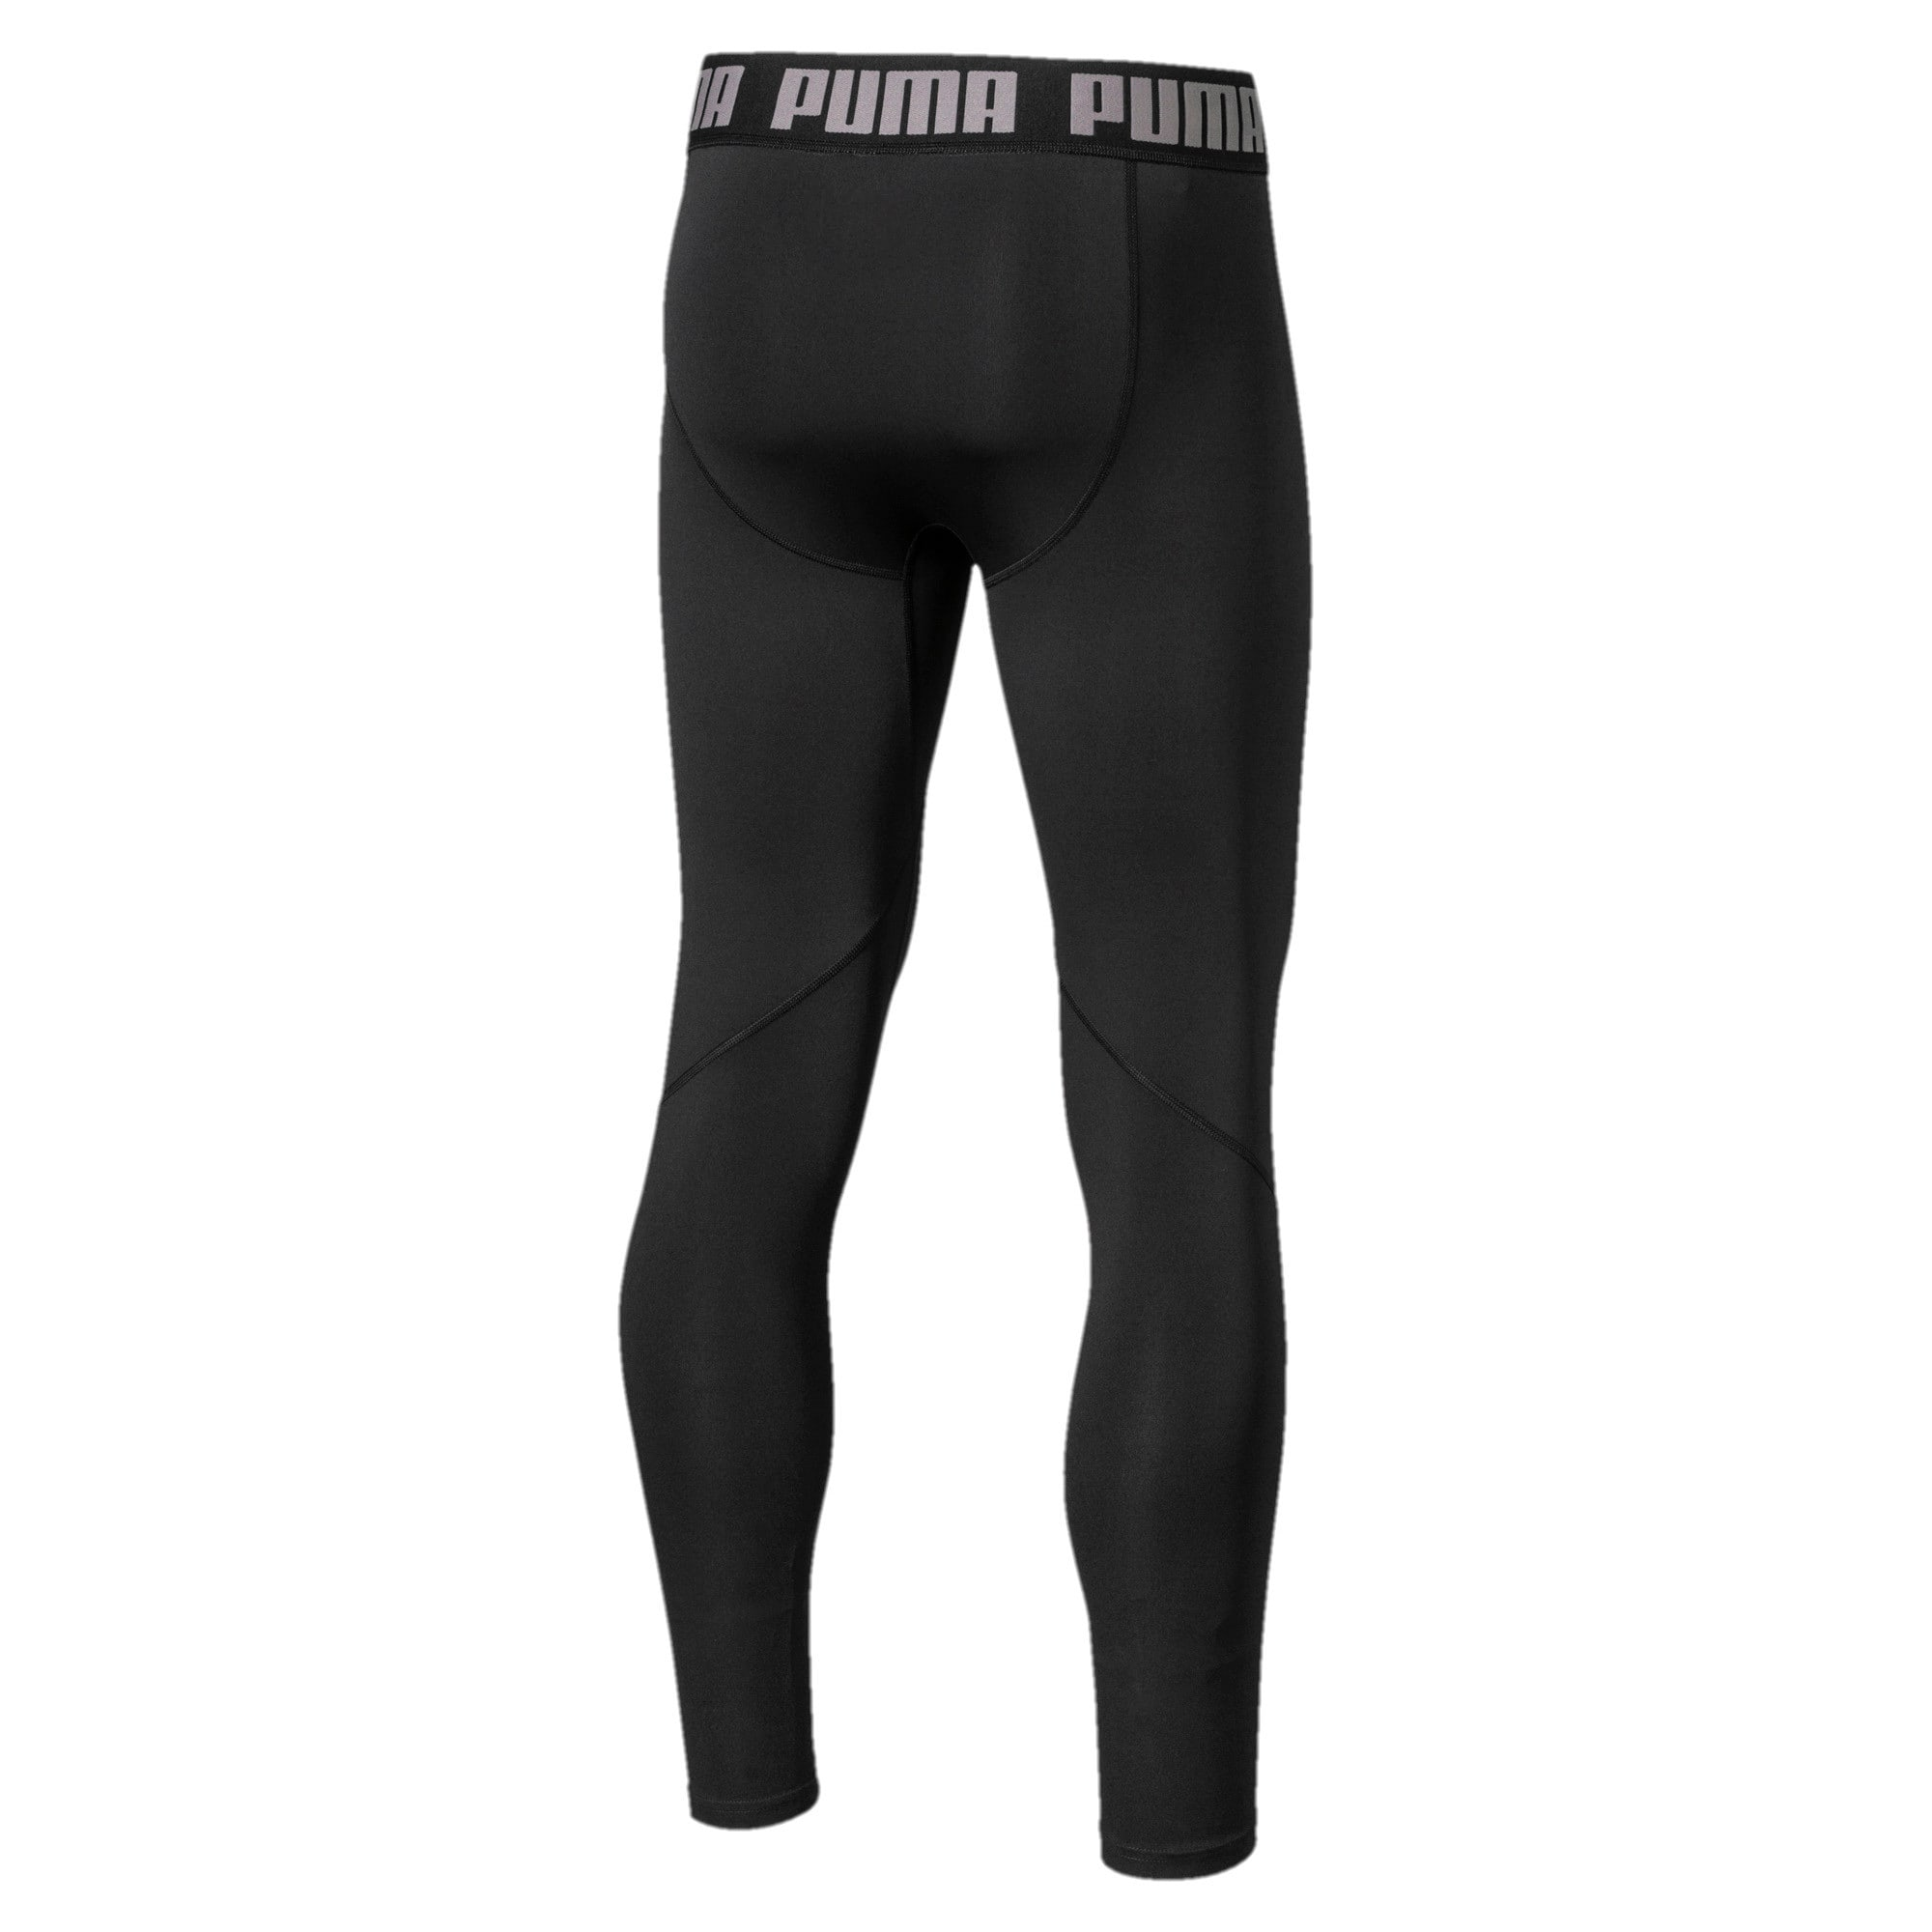 Thumbnail 5 of BND 7/8 Men's Training Tights, Puma Black, medium